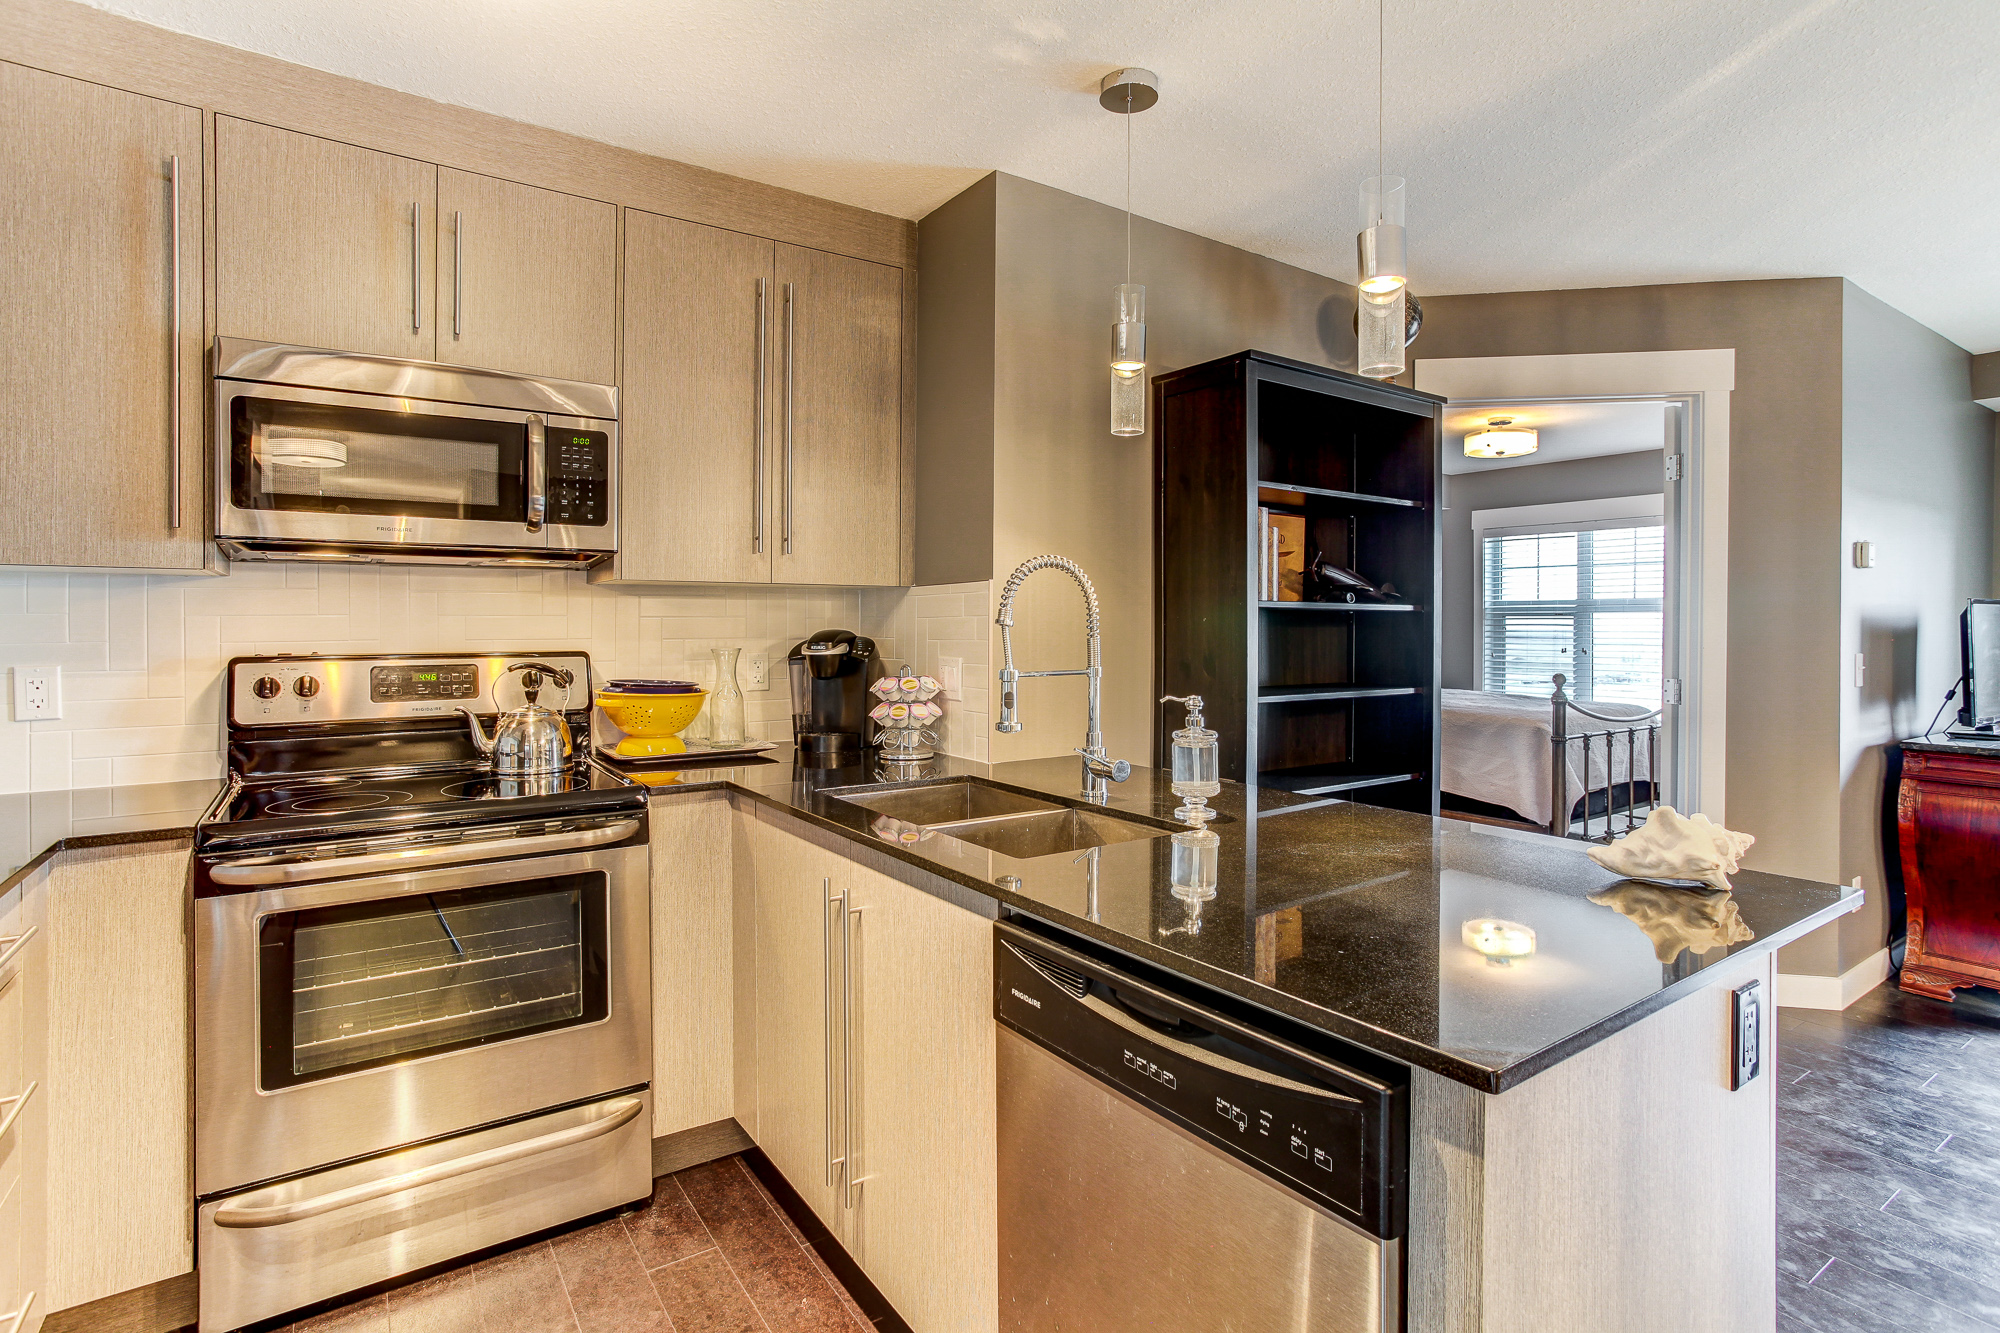 #2410, 11 Mahogany Row SE in Calgary, AB is Now Available